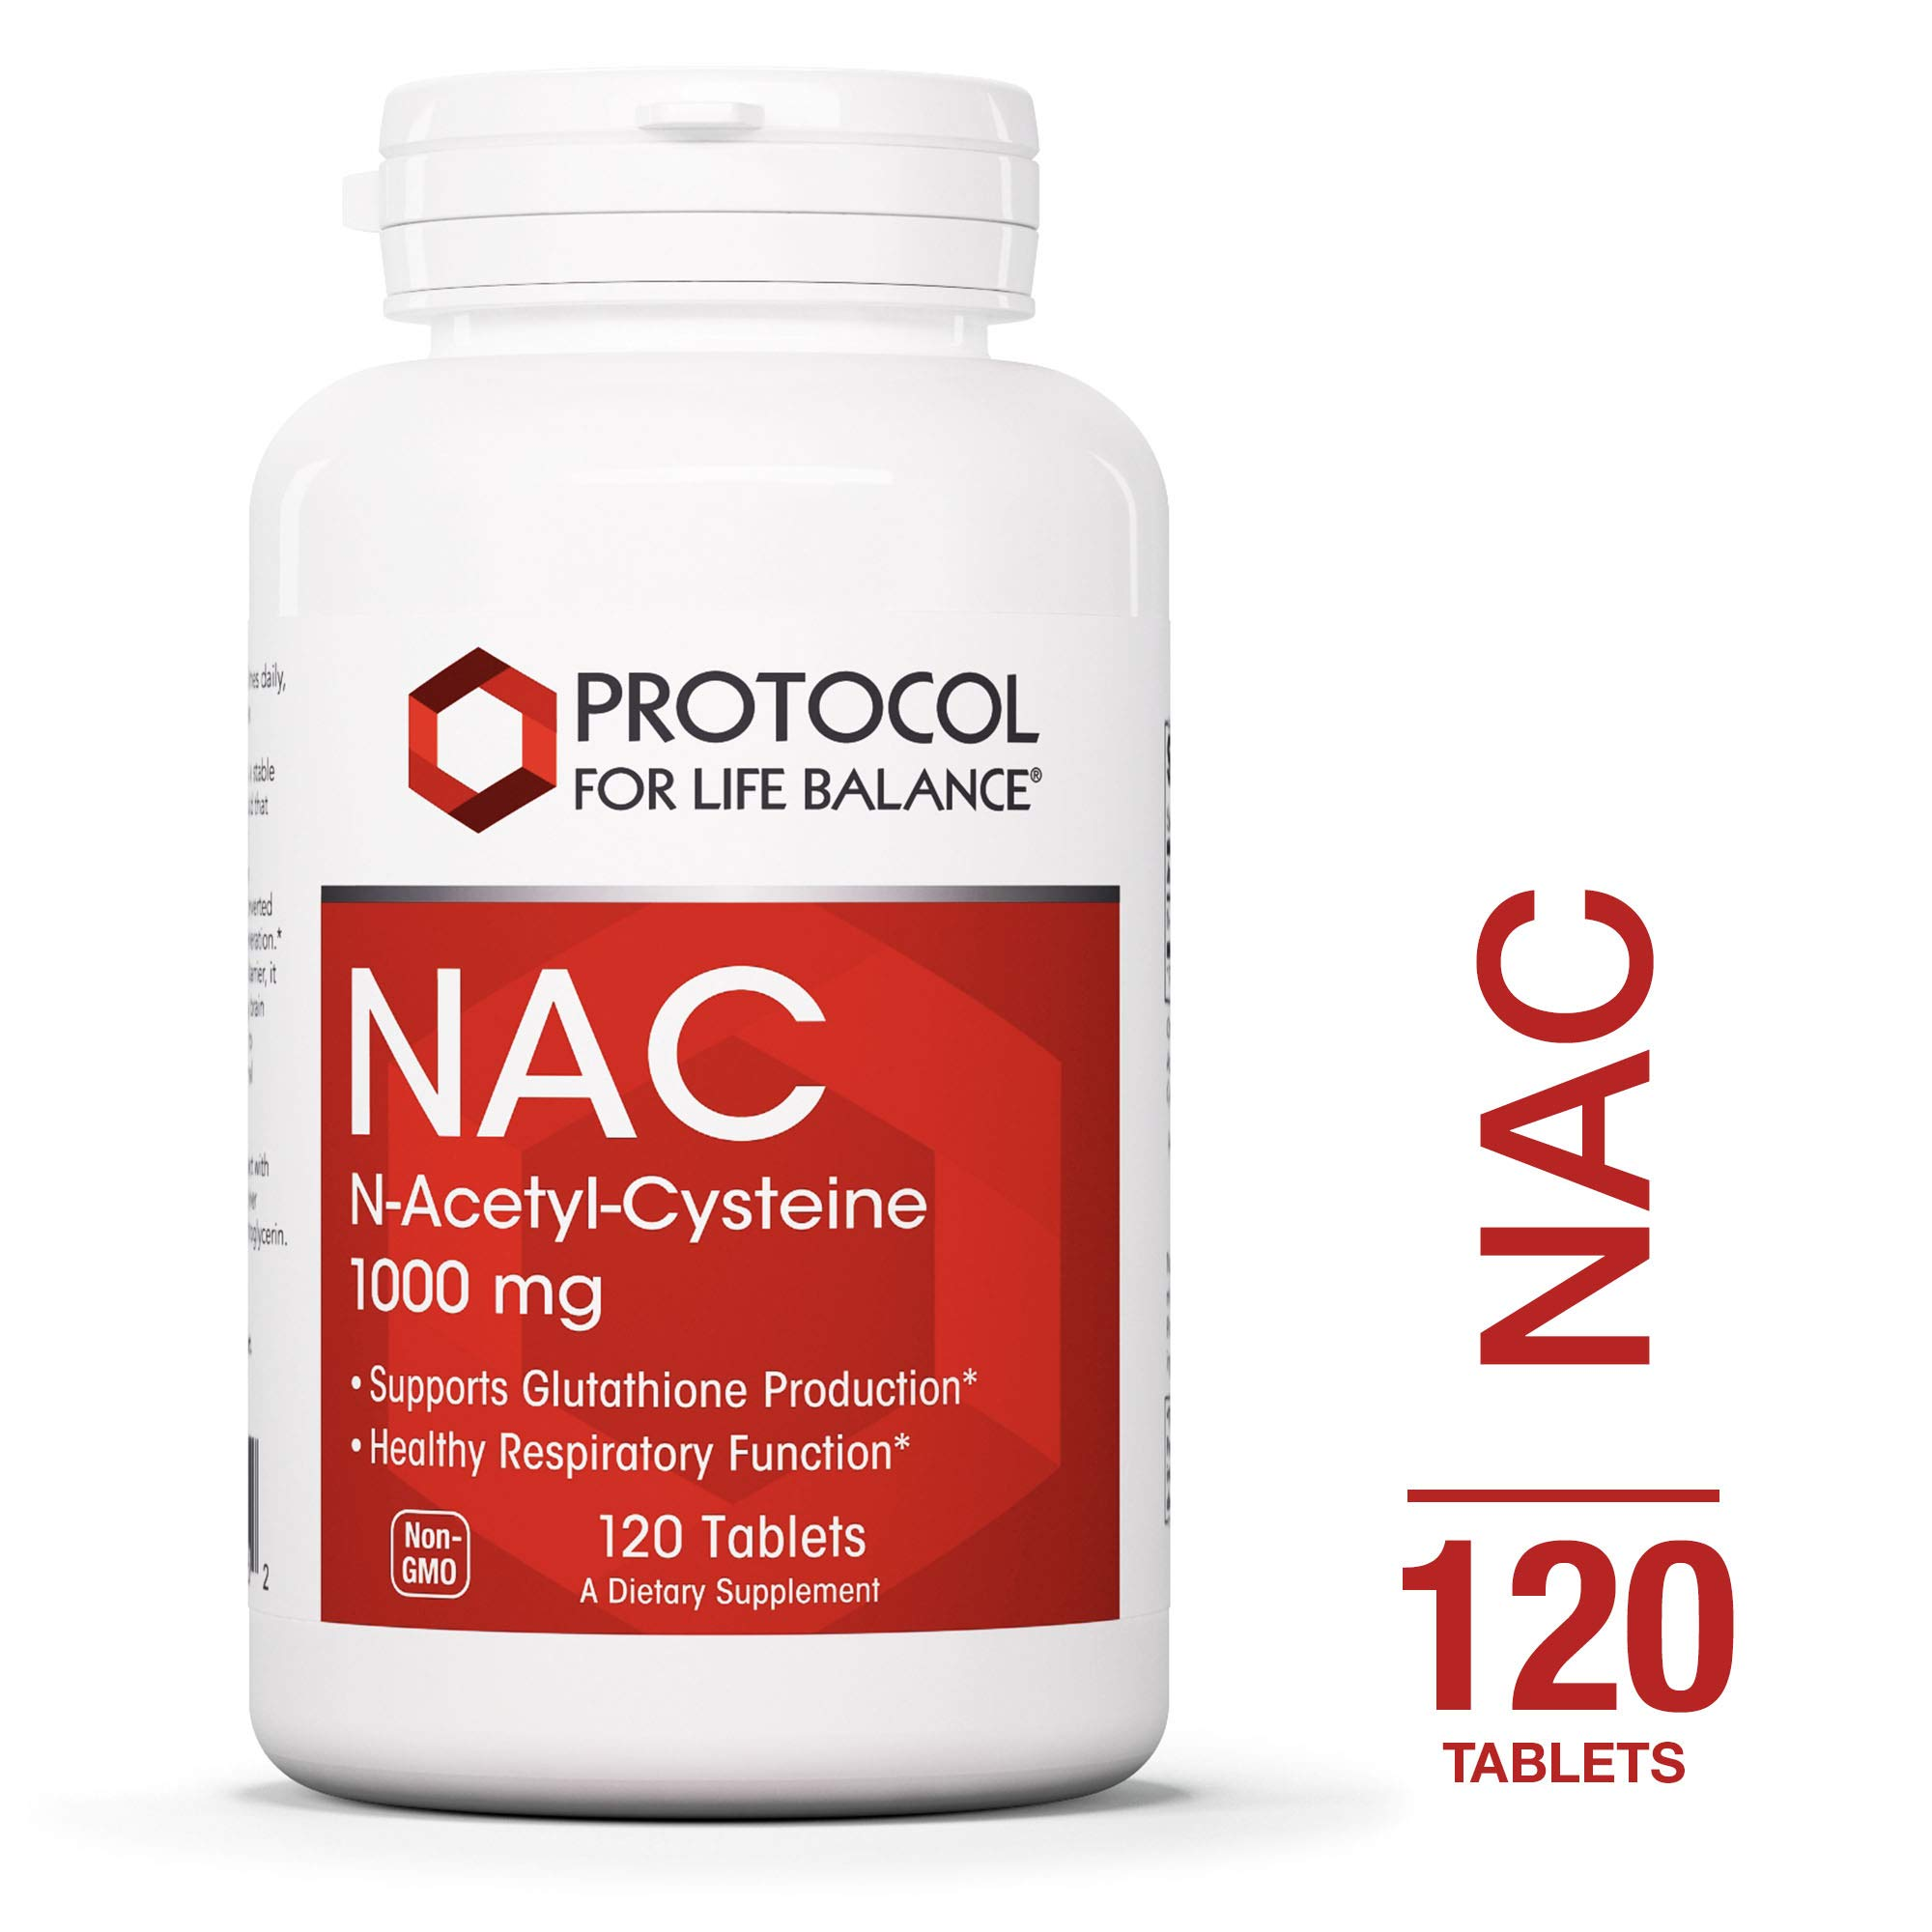 Protocol For Life Balance - NAC N-Acetyl-Cysteine 1,000 mg - Supports Glutathione Production and Promoting Nervous Tissue Health and Healthy Respiratory Function - 120 Tablets